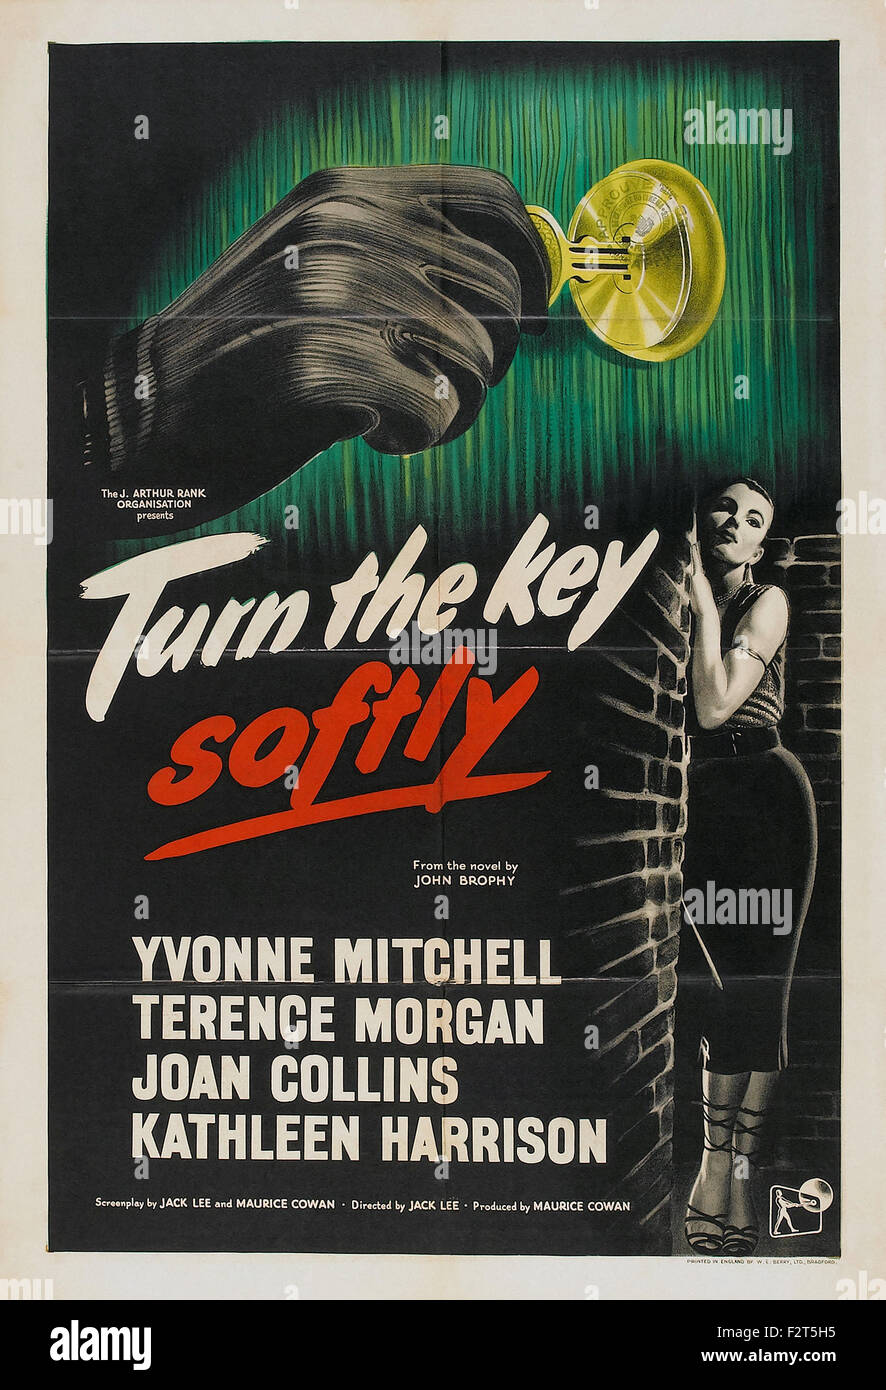 Turn the Key Softly - Movie Poster - Stock Image